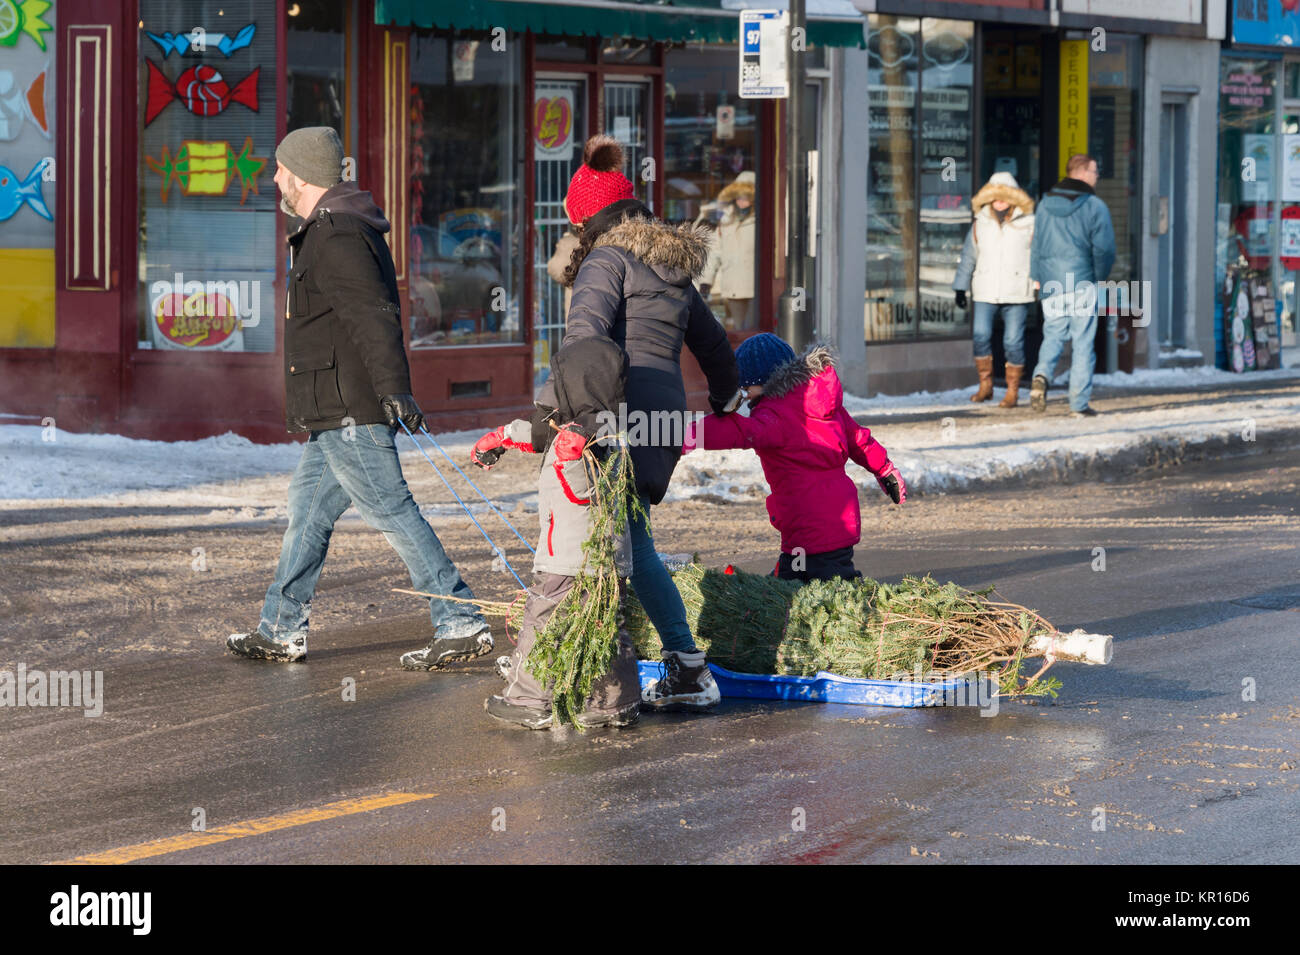 Montreal, Canada - 16 December 2017: Family pulling the christmas tree on a sledge - Stock Image